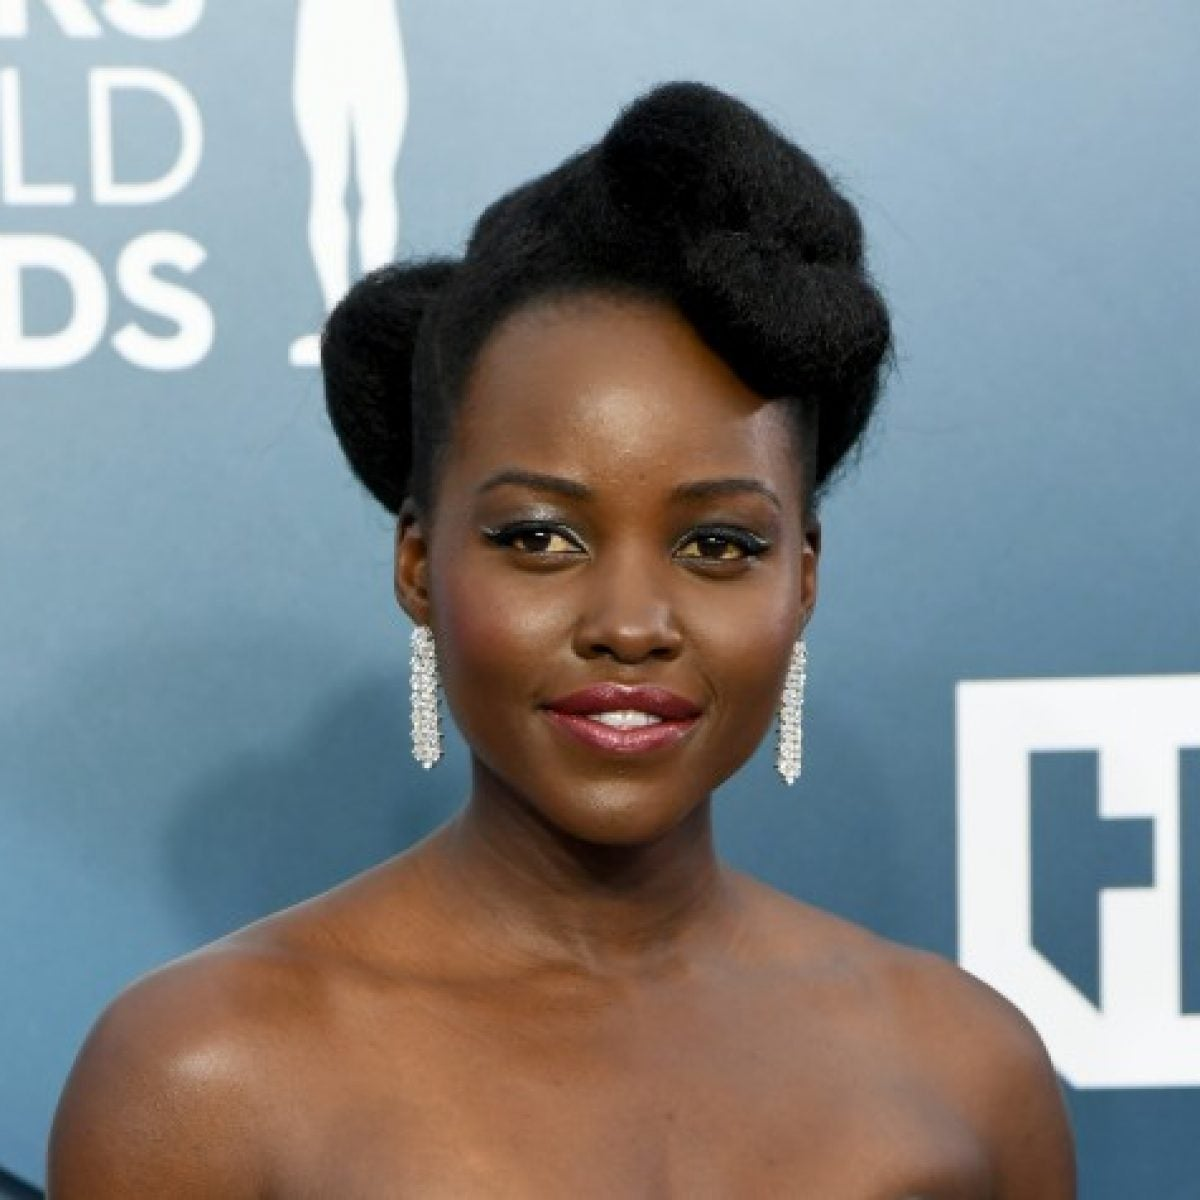 Lupita Nyong'o Stuns In Braided Bangs